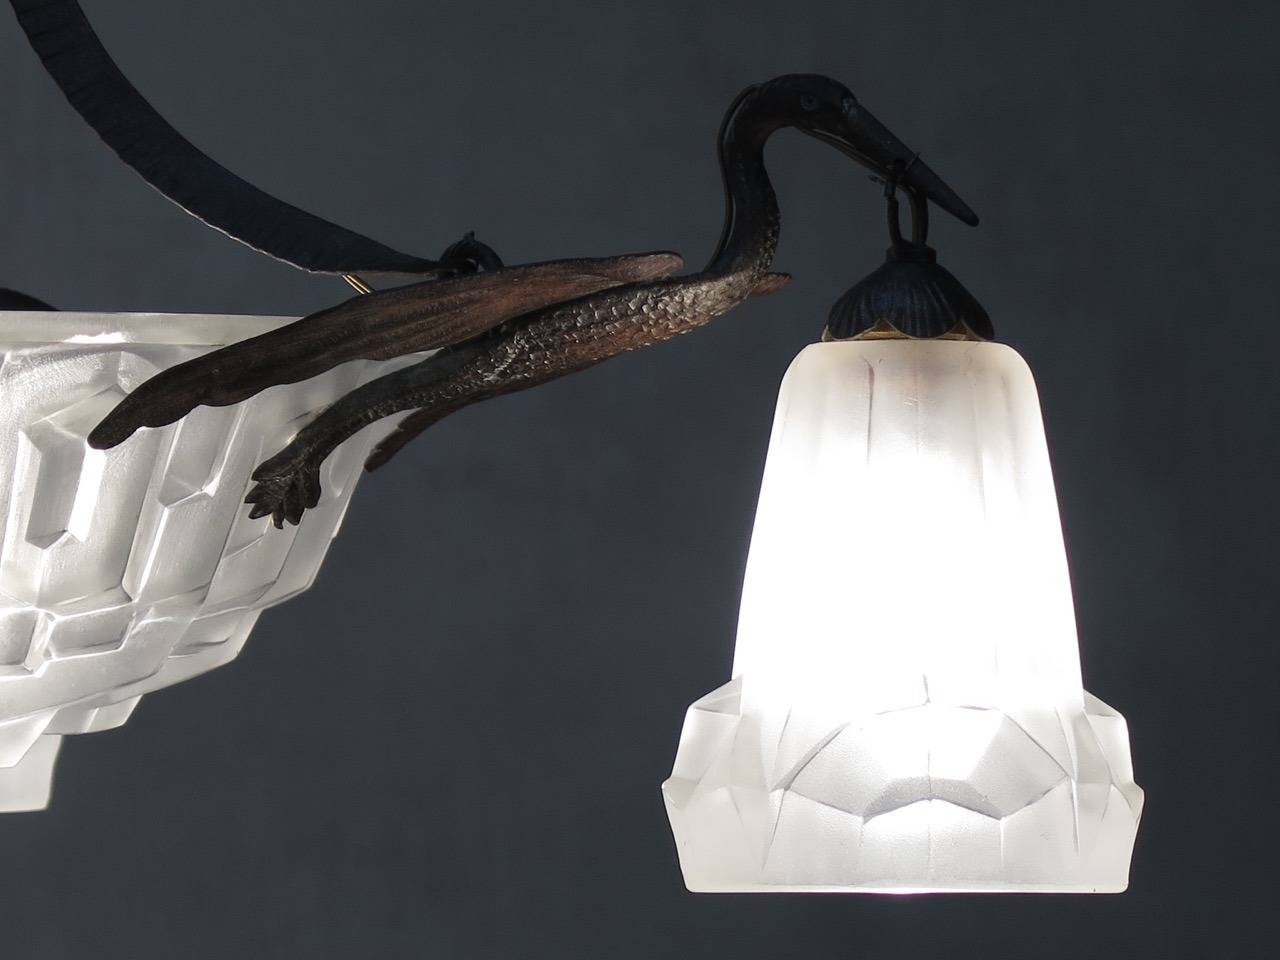 Art Deco Chandelier by Degue, France, 1930s In Excellent Condition For Sale In Isle Sur La Sorgue, Vaucluse